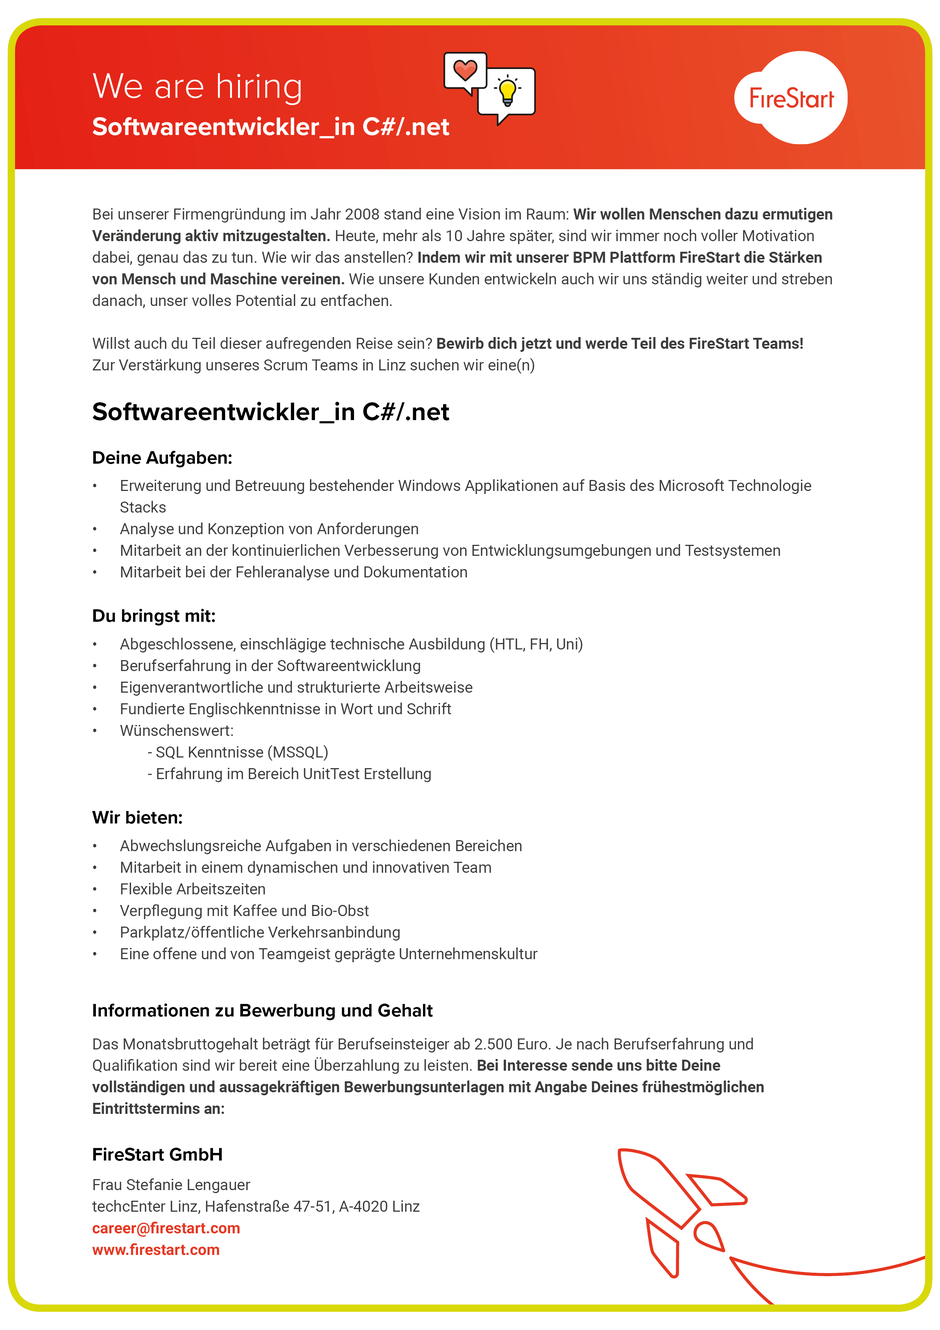 Software Developer Jobs - Softwareentwickler C#/.NET - FireStart GmbH - Linz - Oberösterreich - 1